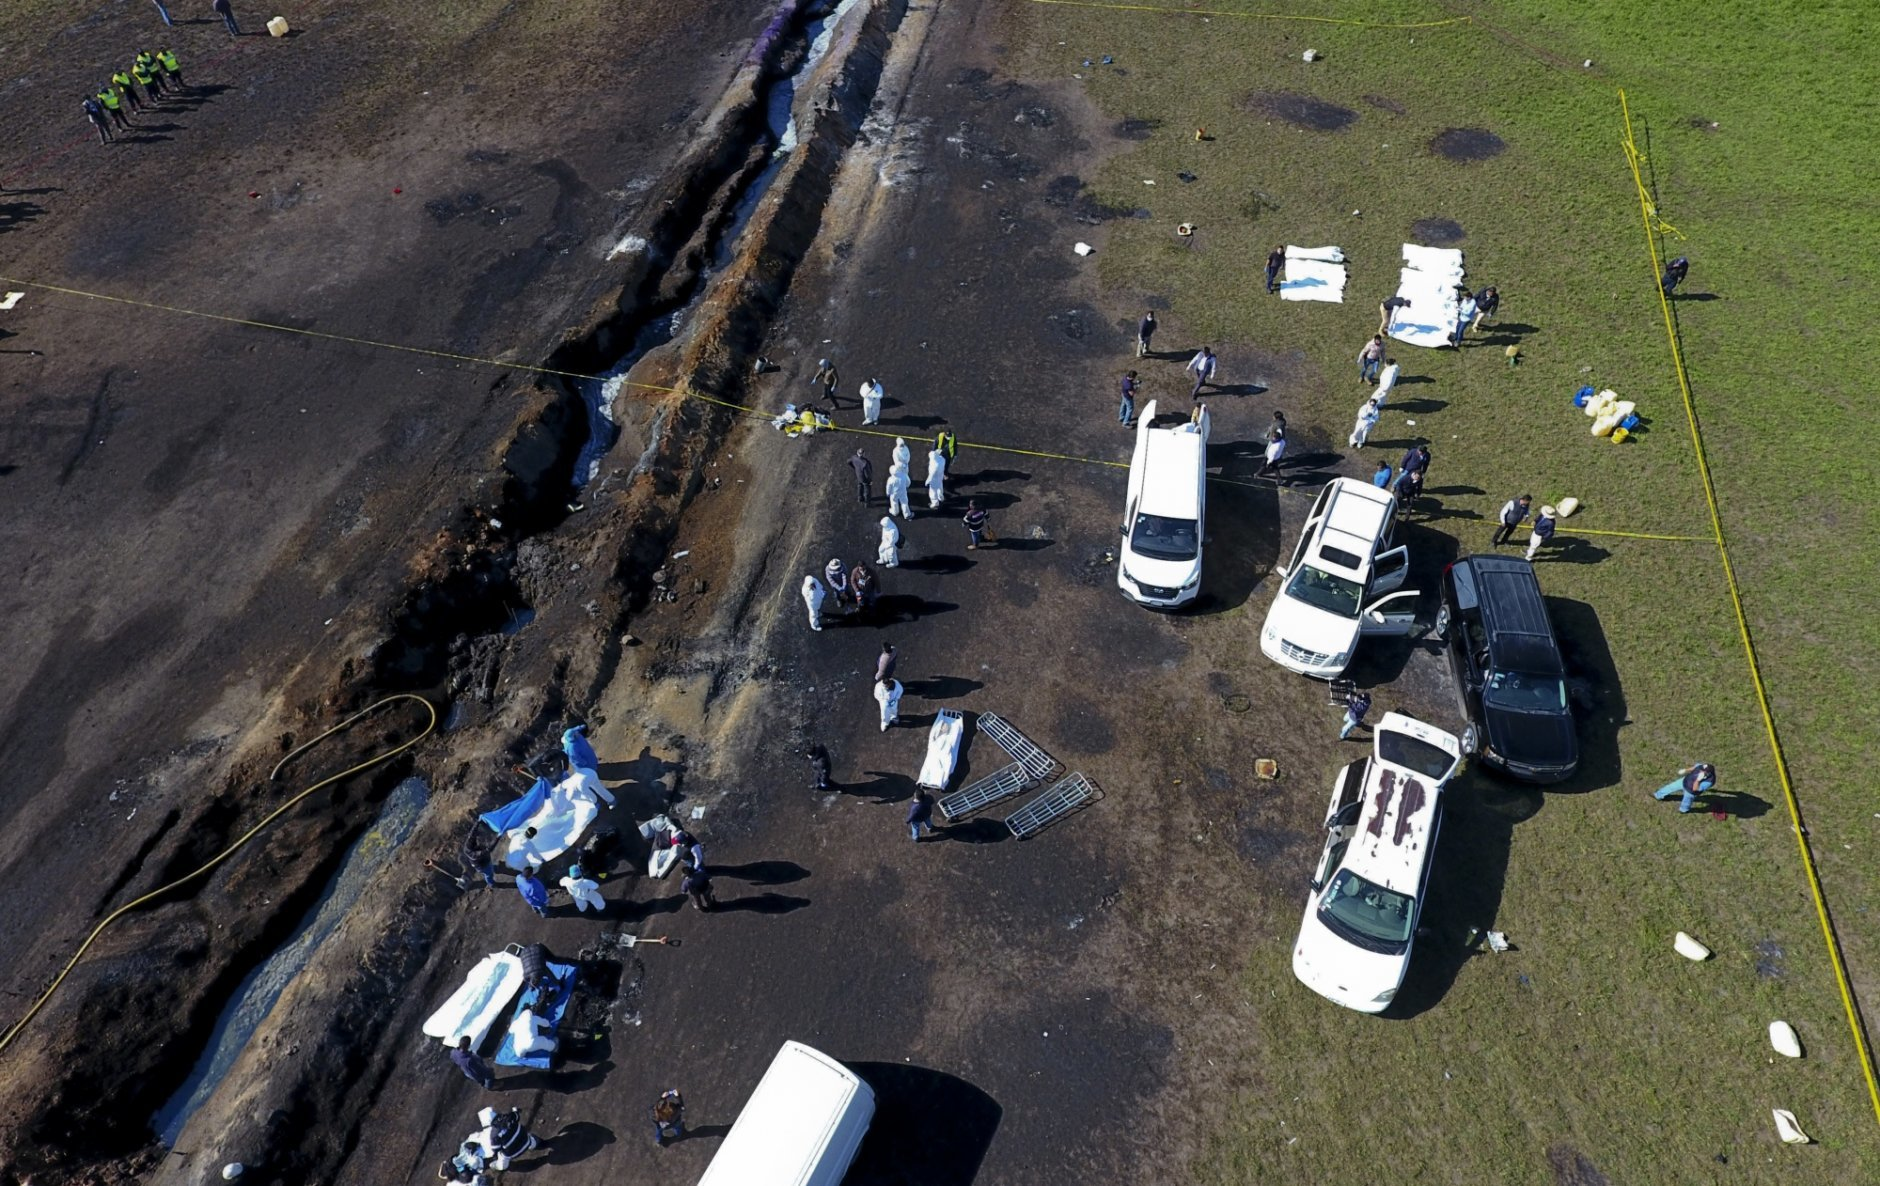 Forensic experts work the area an oil pipeline explosion in Tlahuelilpan, Hidalgo state, Mexico, Saturday, Jan. 19, 2019. A massive fireball that engulfed people scooping up fuel spilling from a pipeline ruptured by thieves in central Mexico killed dozens of people and badly burned many more.  (AP Photo/Claudio Cruz)